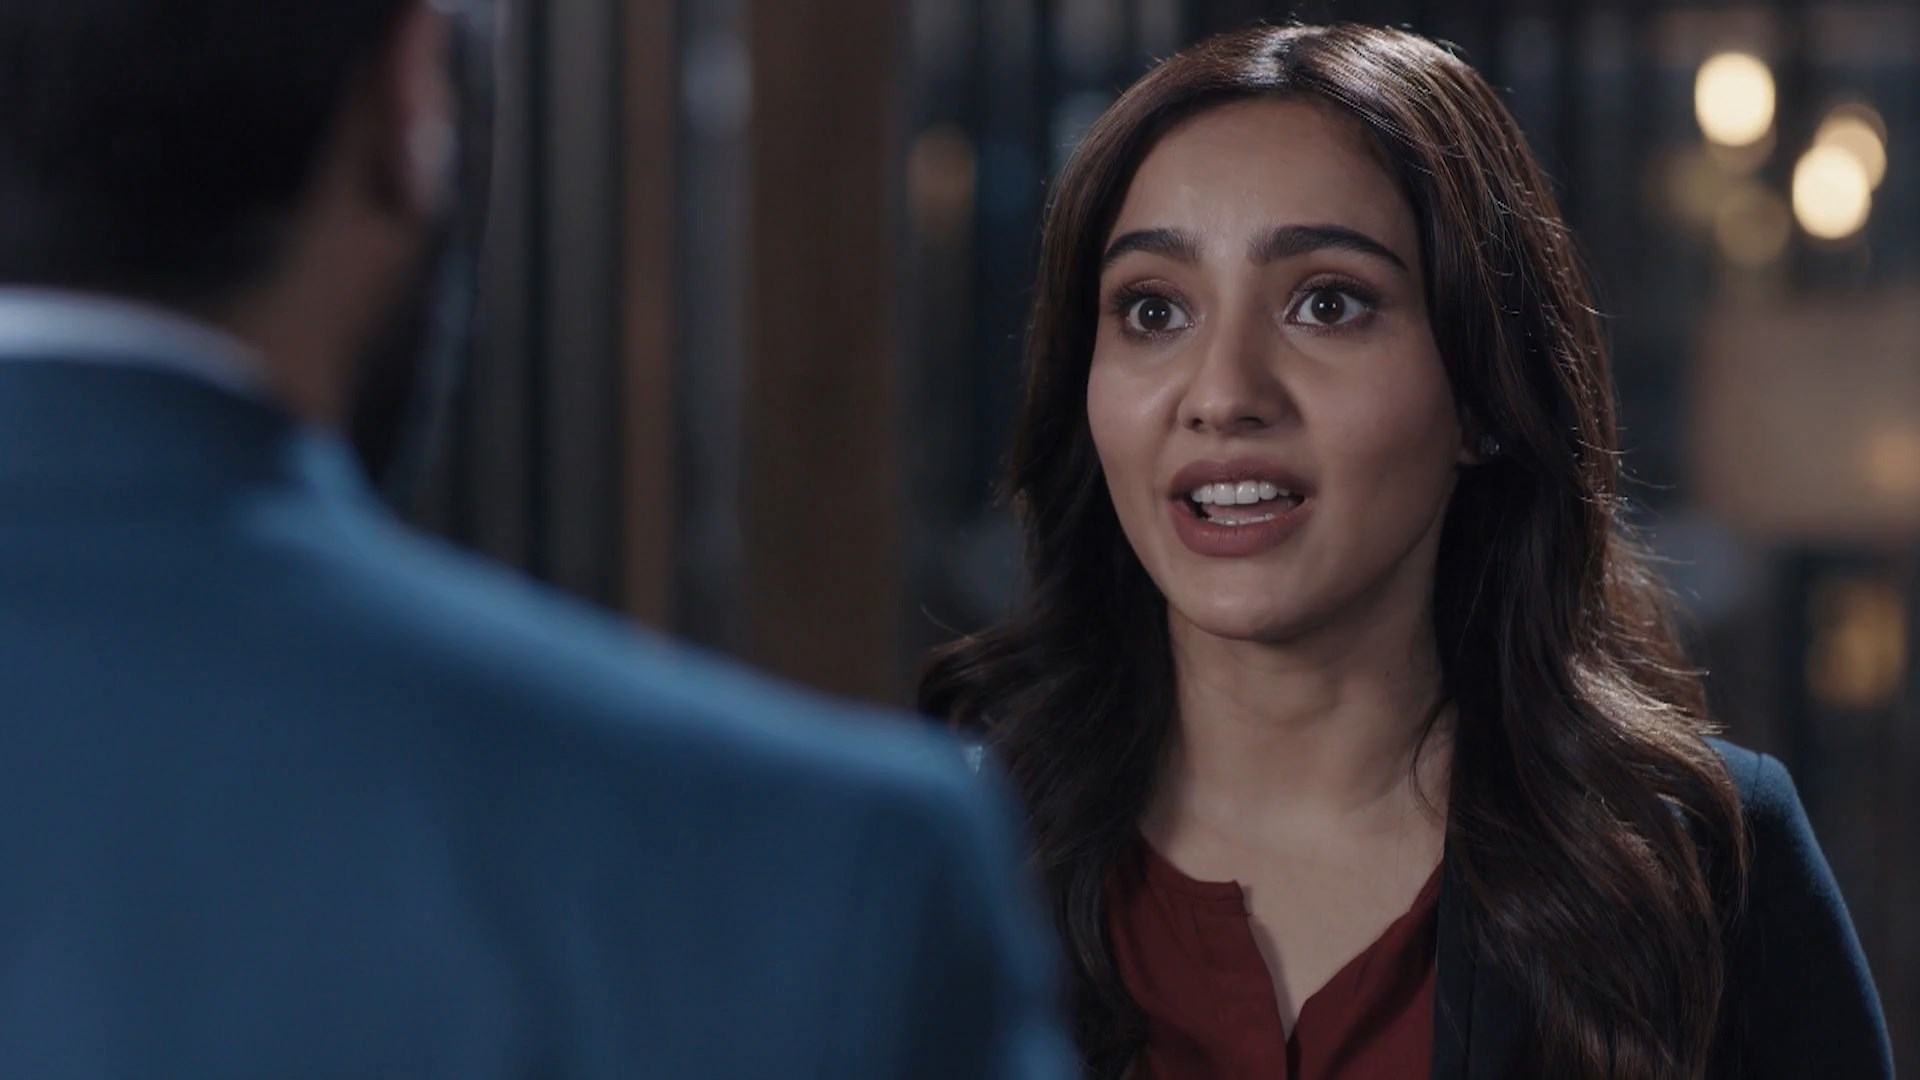 Illegal10fe14f - Illegal 2020 Hindi S01 Voot Select Complete Web Series 480p HDRip 900MB x264 AAC